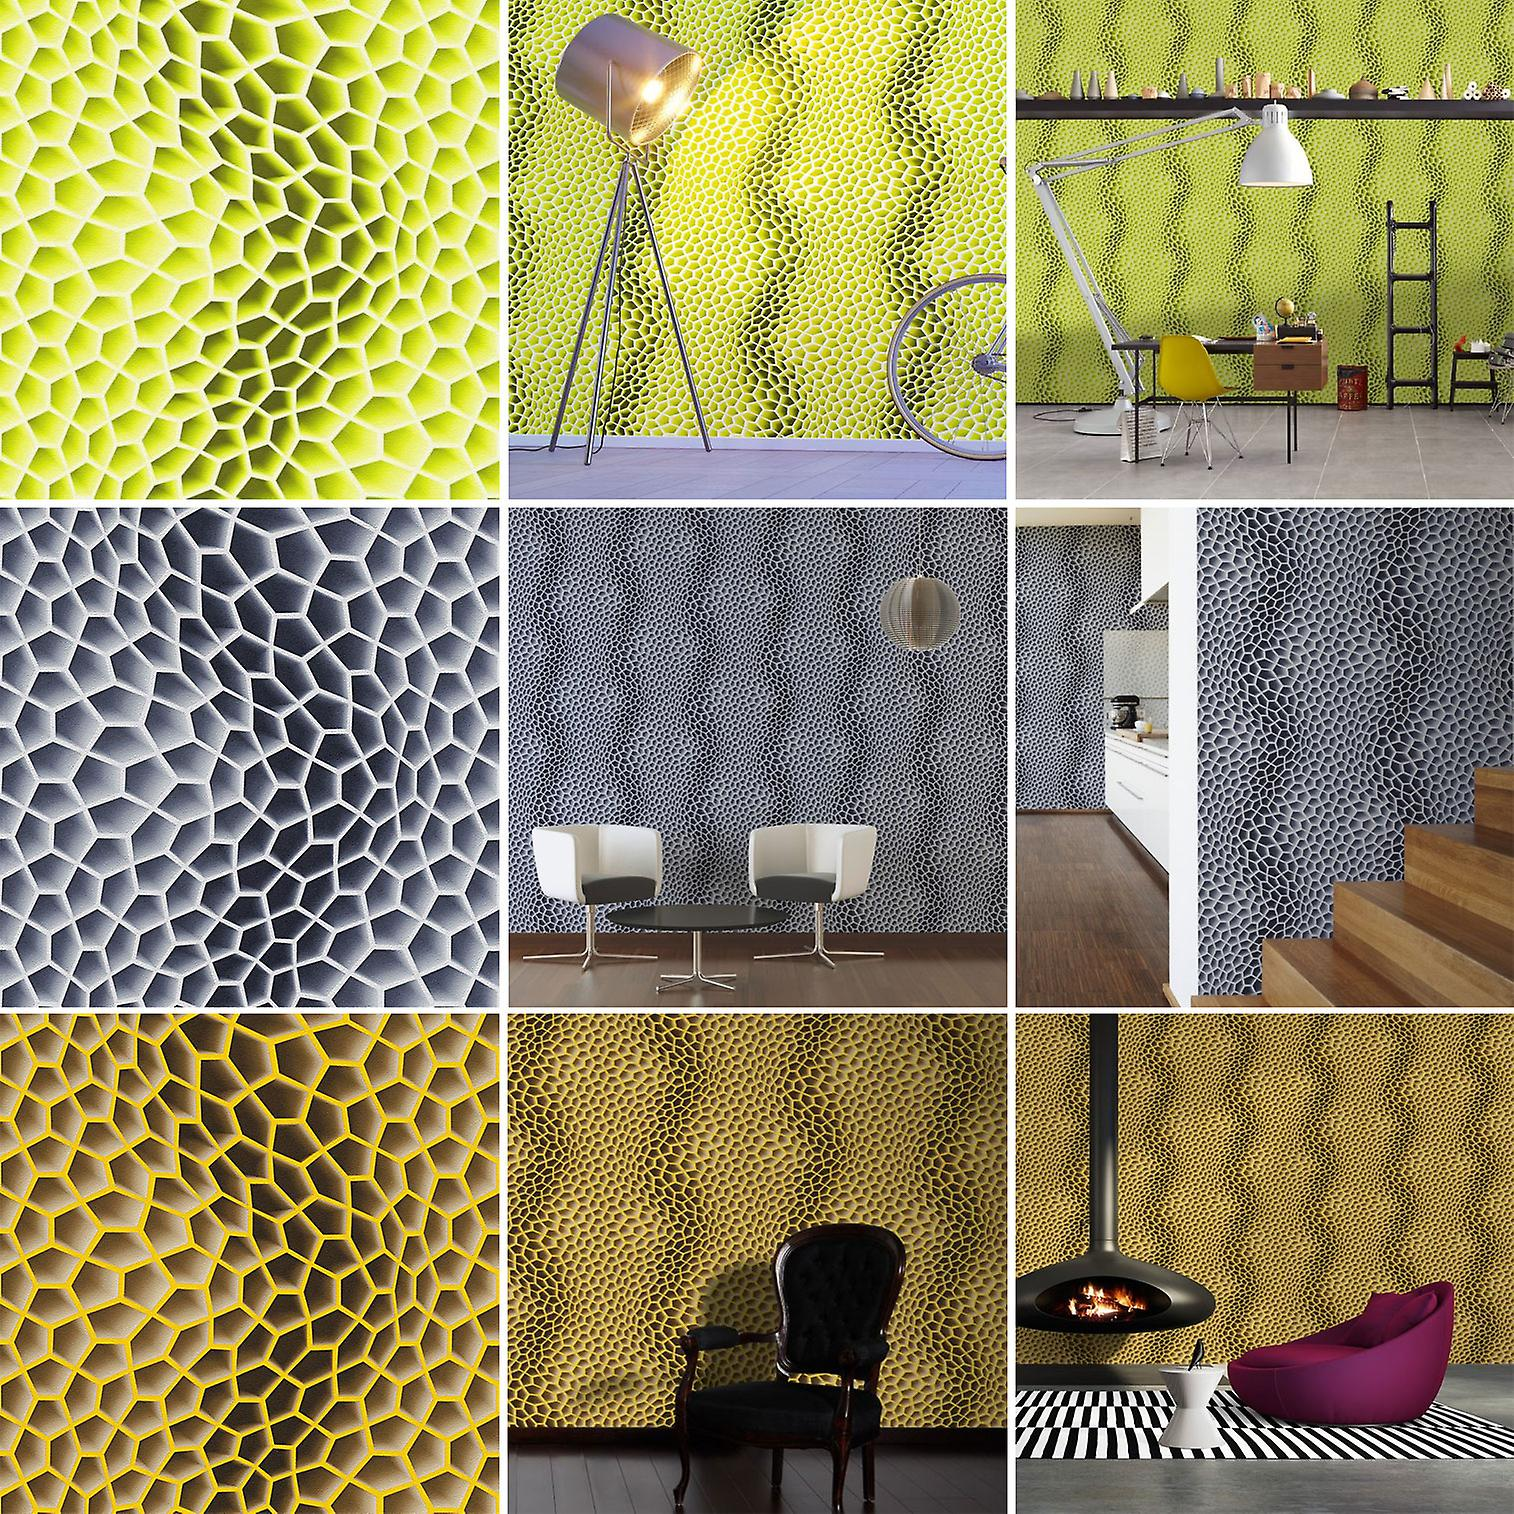 3D Wallpaper Geometric Retro Funky Paste The Wall Textured Vinyl AS Creation